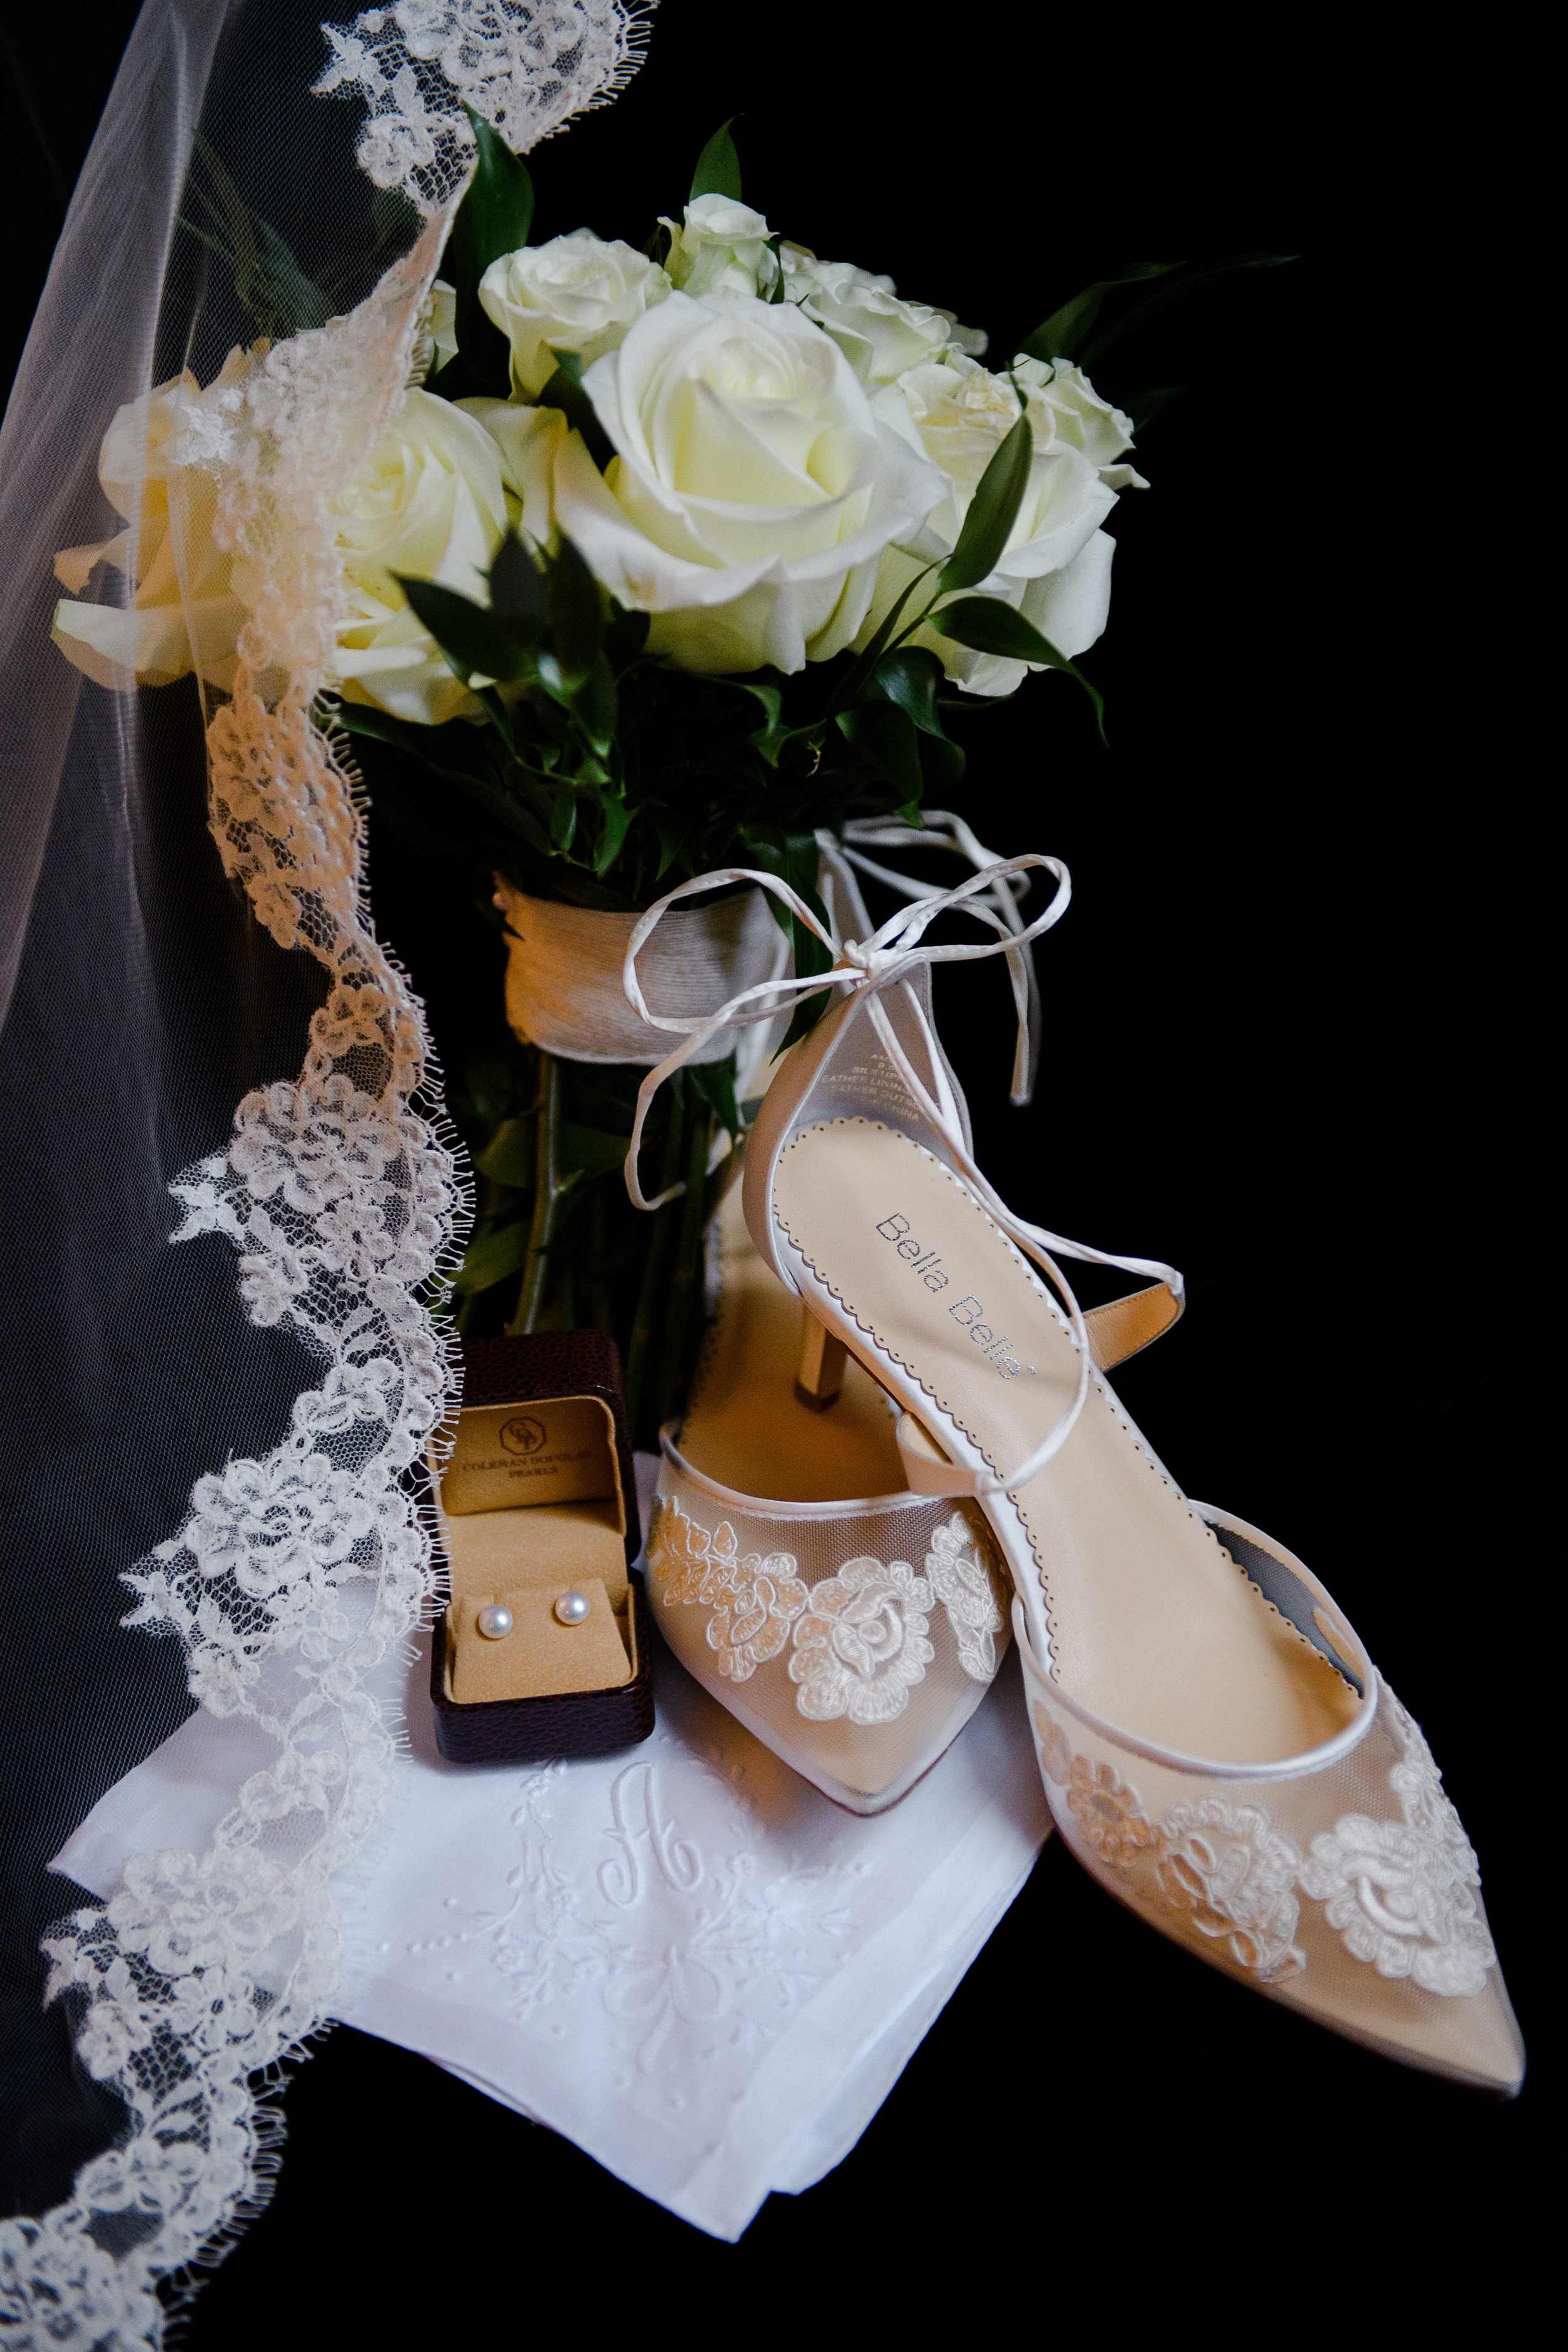 Wedding shoes: Union League Club of Chicago wedding captured by Studio This Is Photography. See more fall wedding ideas on CHItheeWED.com!